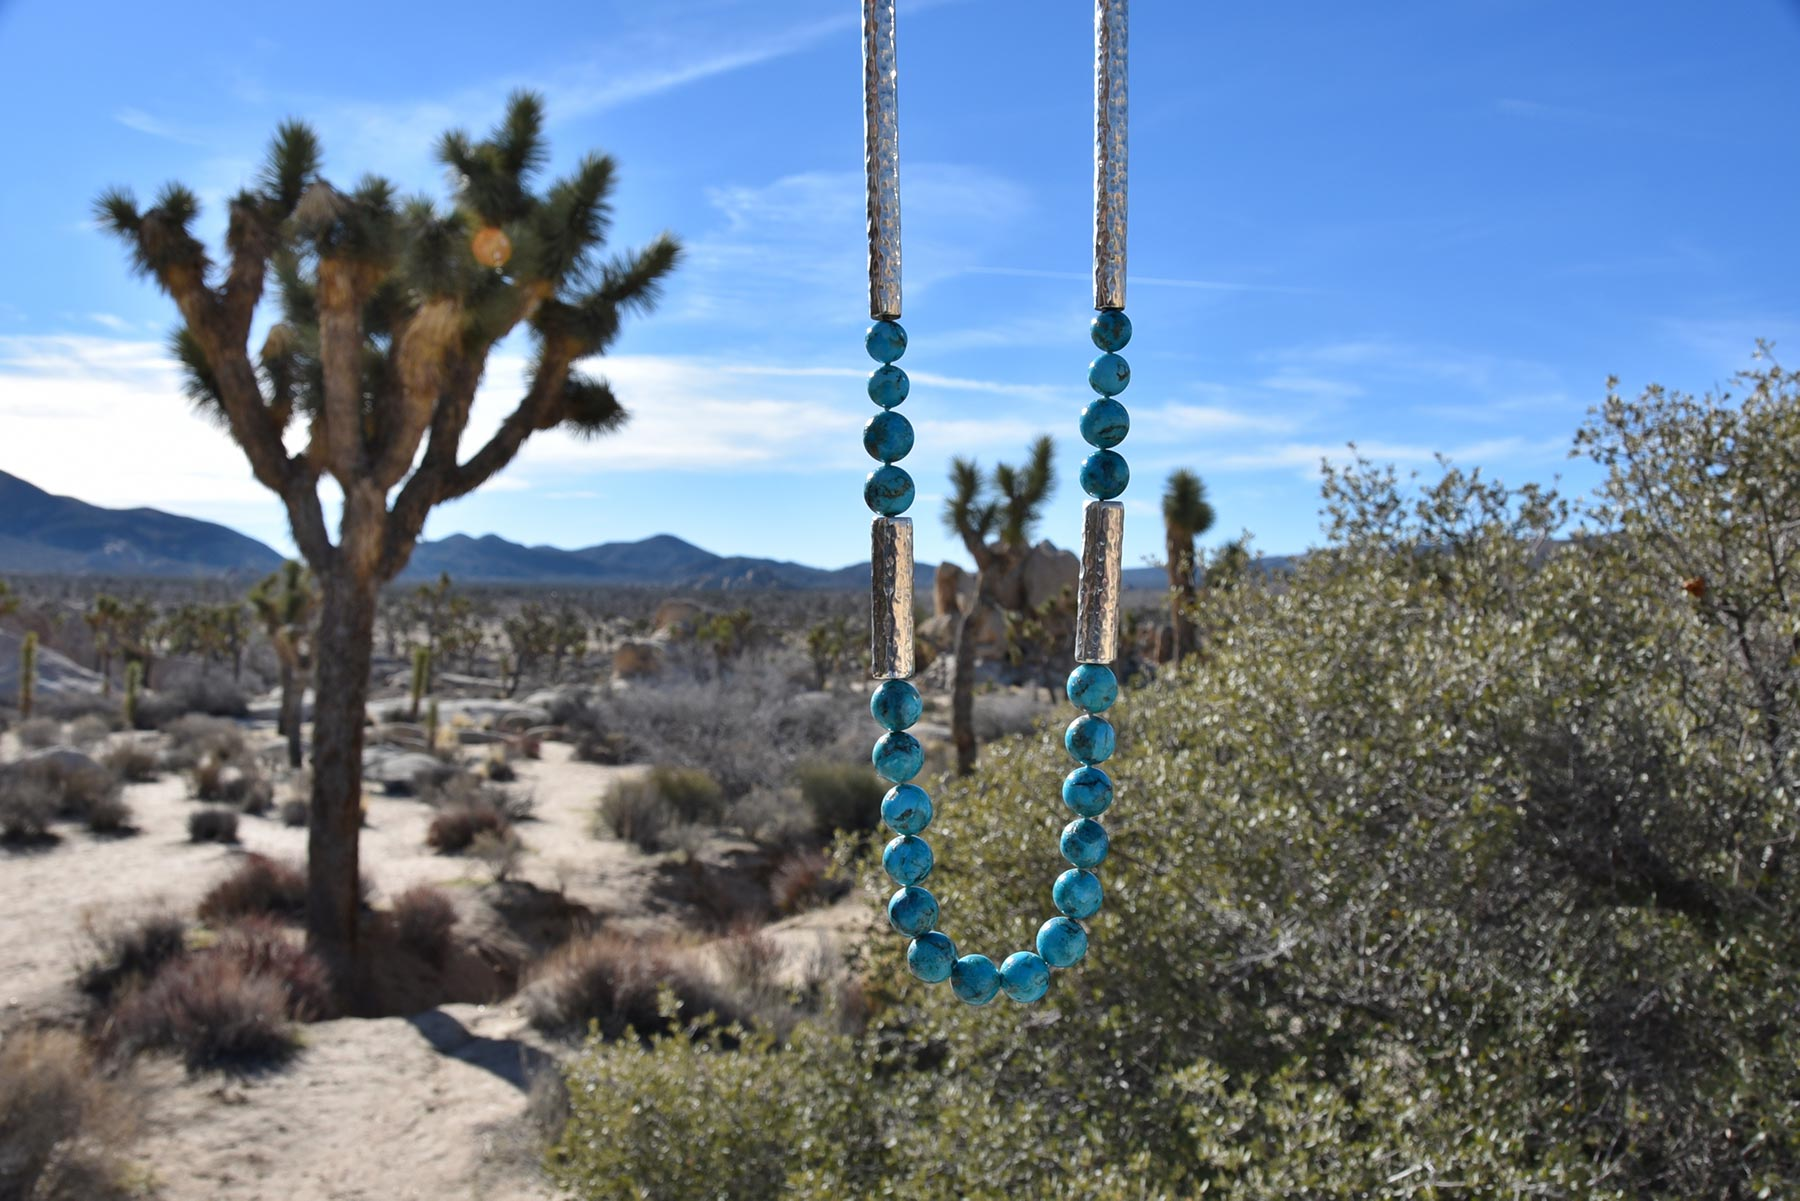 A necklace of Arizona Boulder turquoise rounds with 925 silver tubes hand-hammered by Old World craftsmen in Vicenza, Italy, hanging from a Joshua tree in Joshua Tree National Park, Mojave Desert, California. From the Silver Stones Collection by Kamila Kubelik.